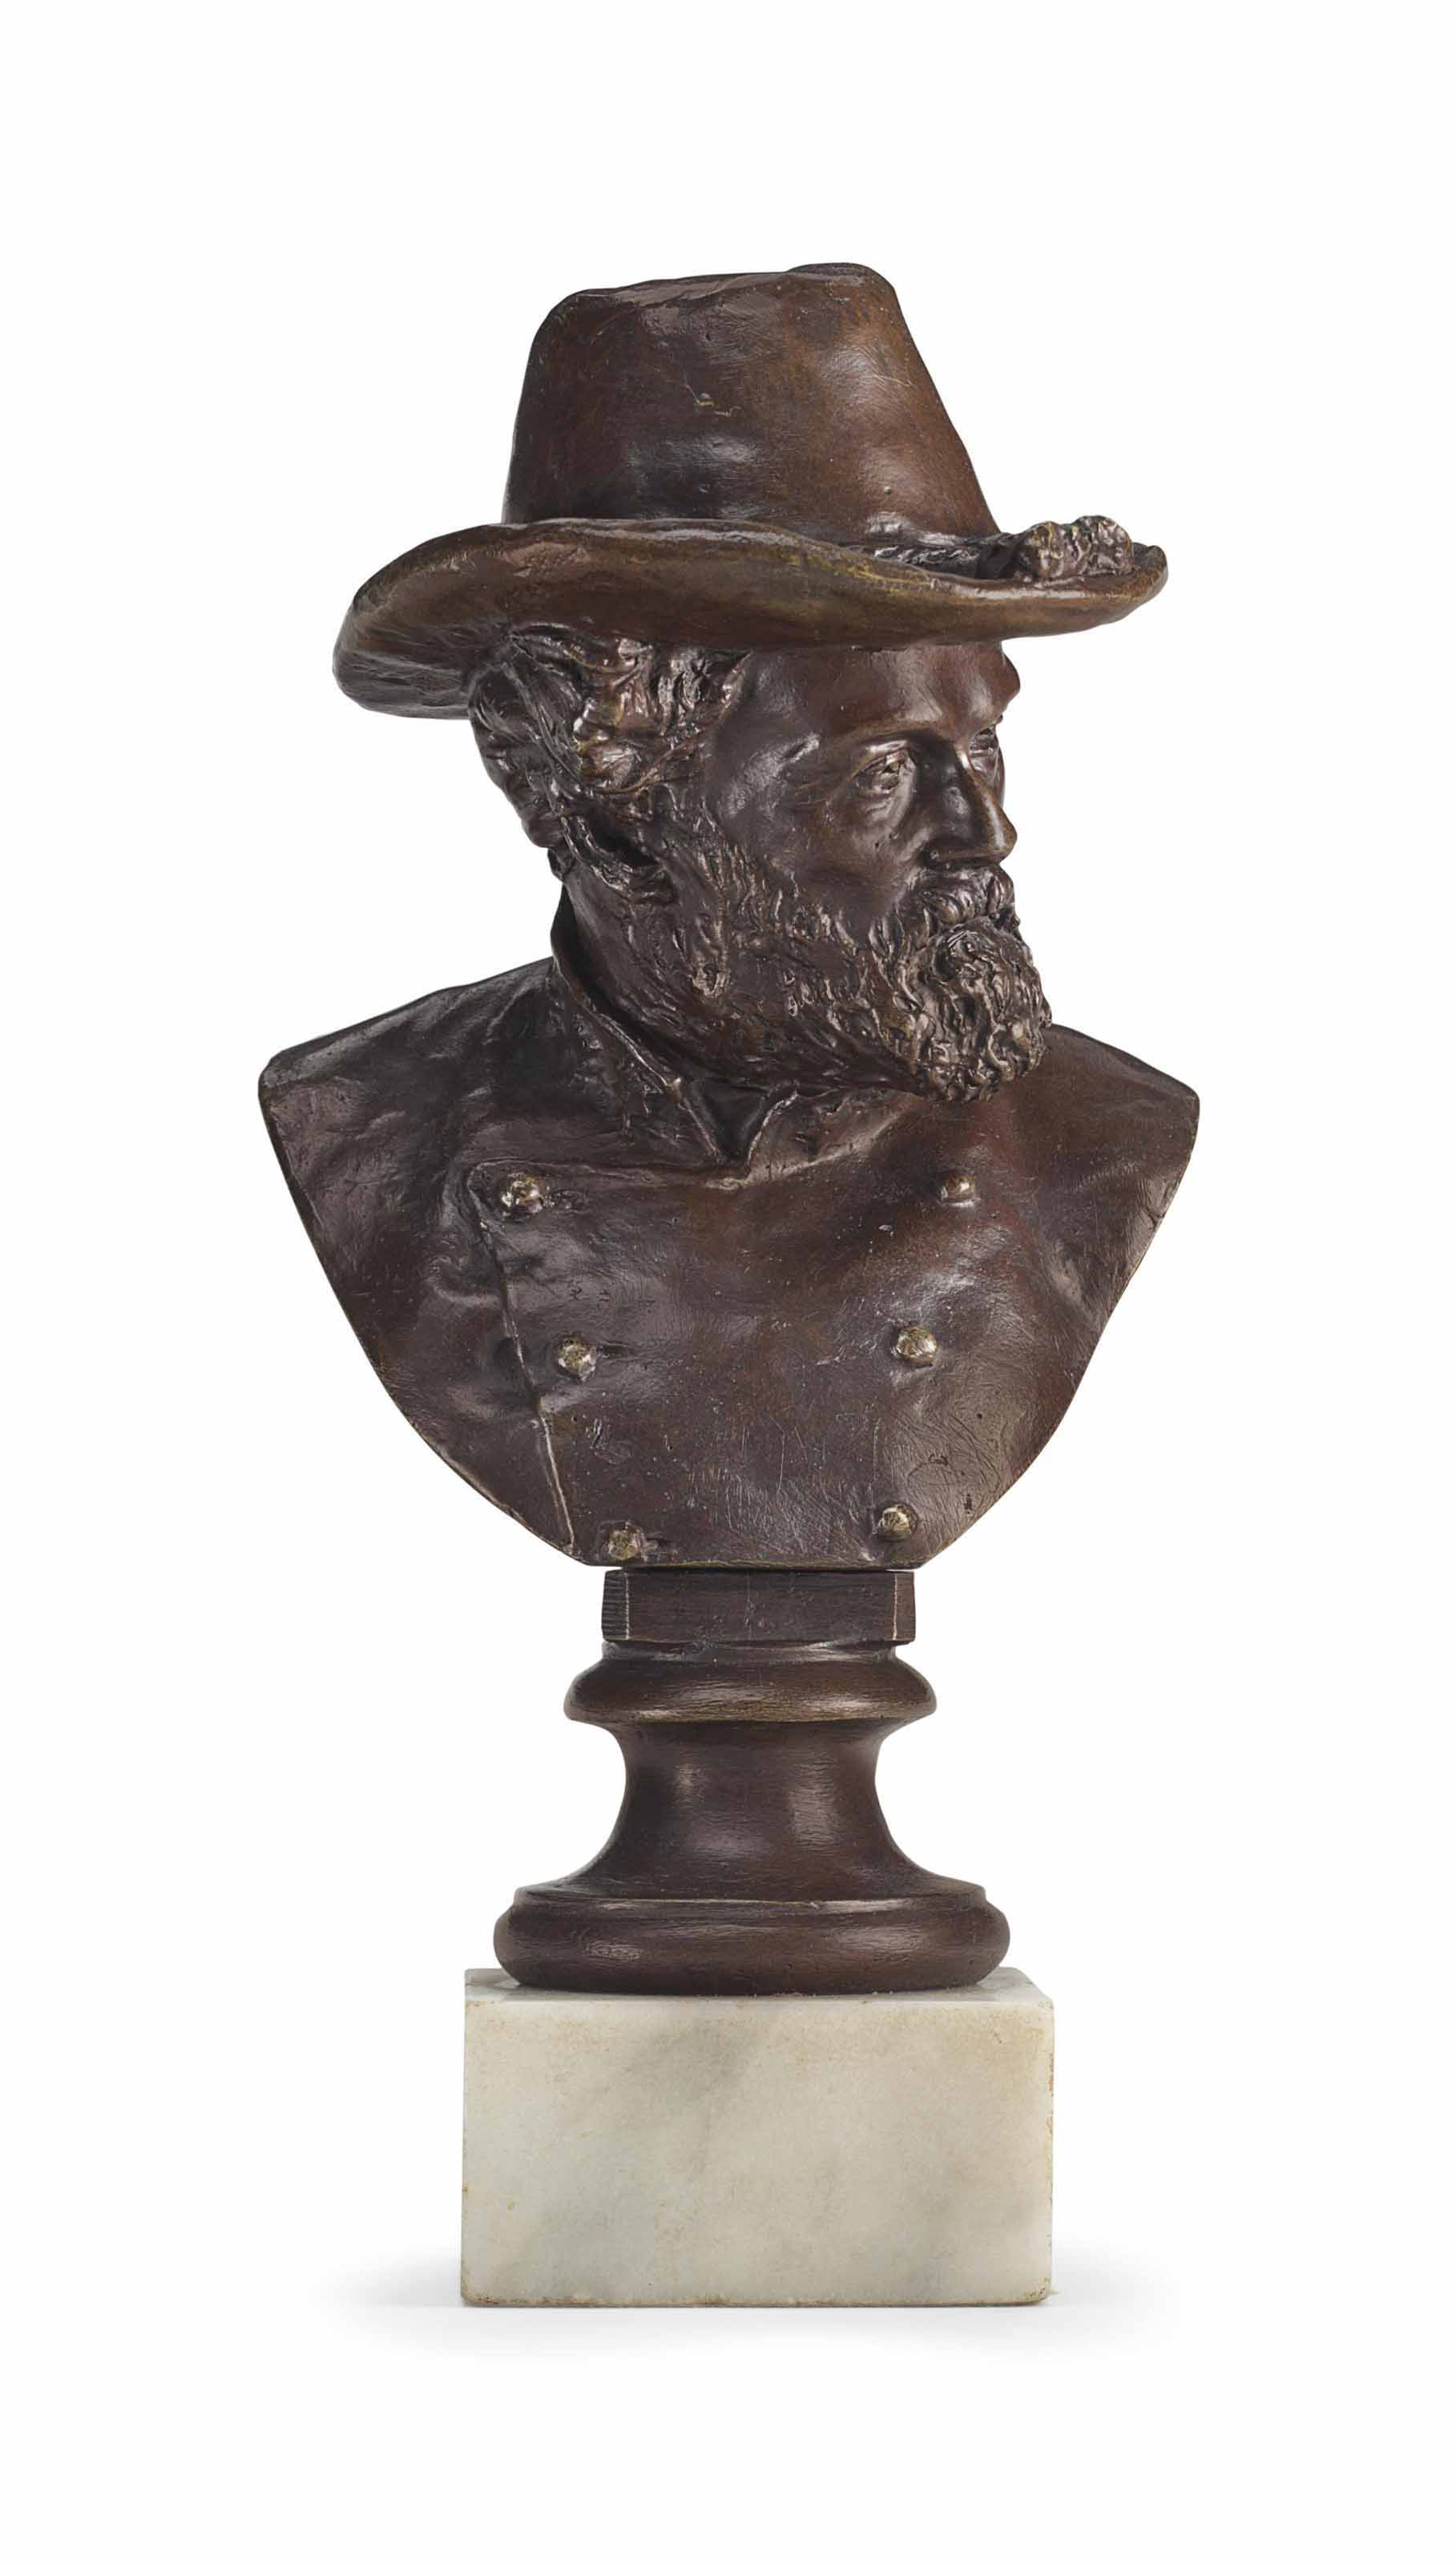 Portrait bust of Robert E. Lee